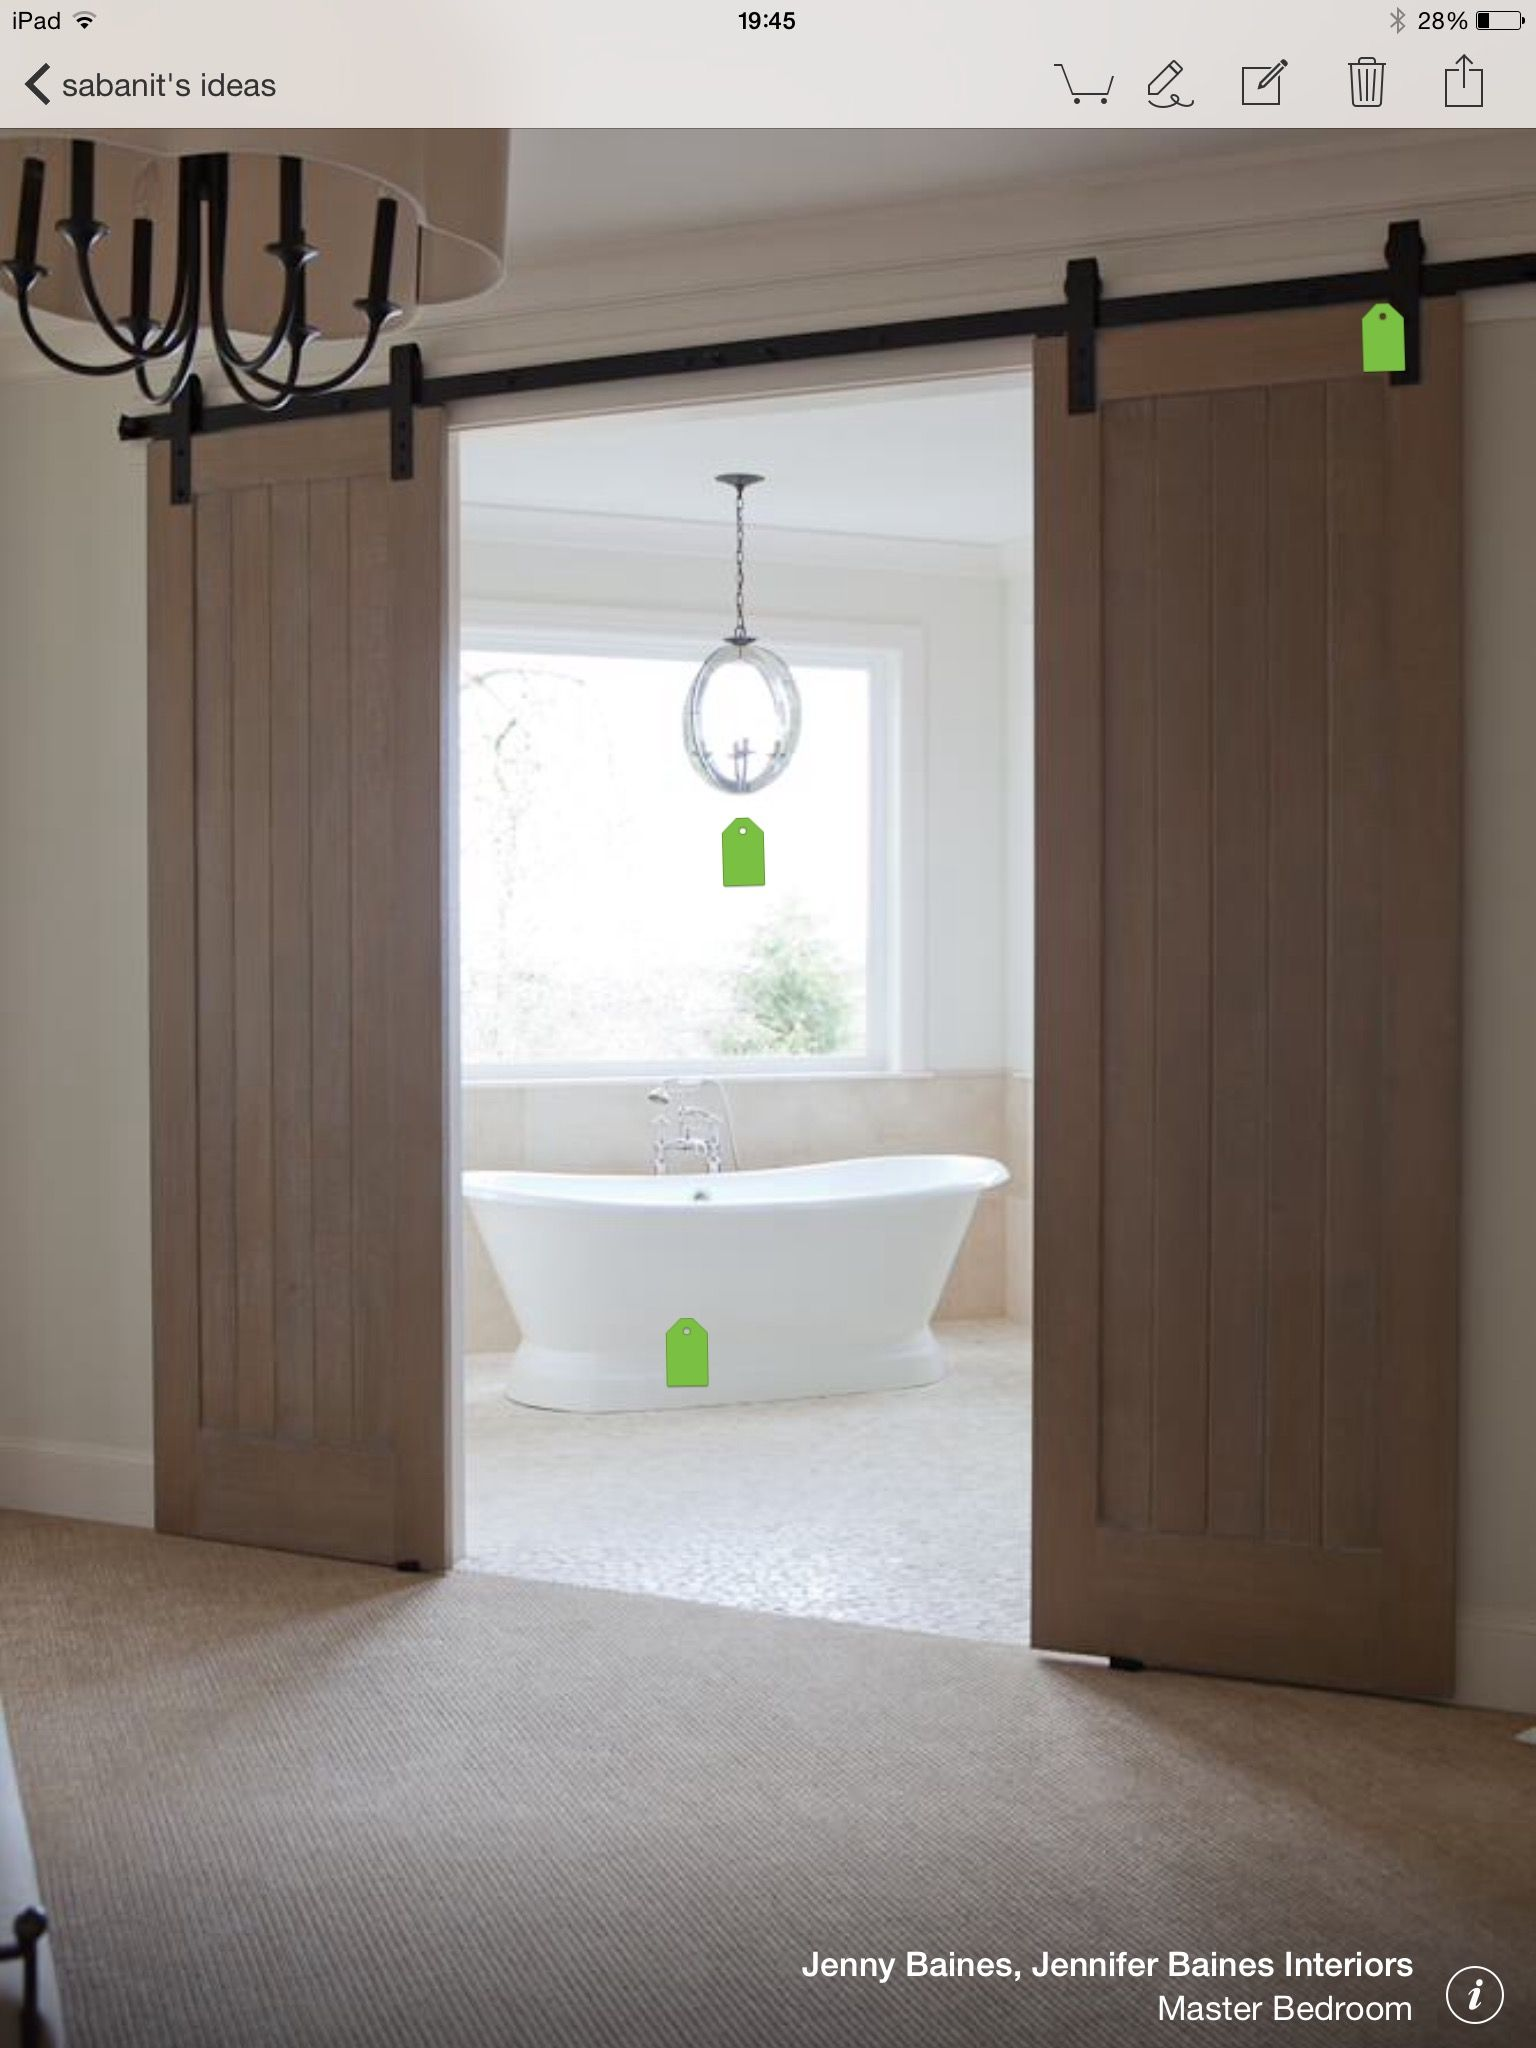 Sliding Barn Doors, Arteriors Rittenhouse Chandelier, Freestanding Tub And Mosaic